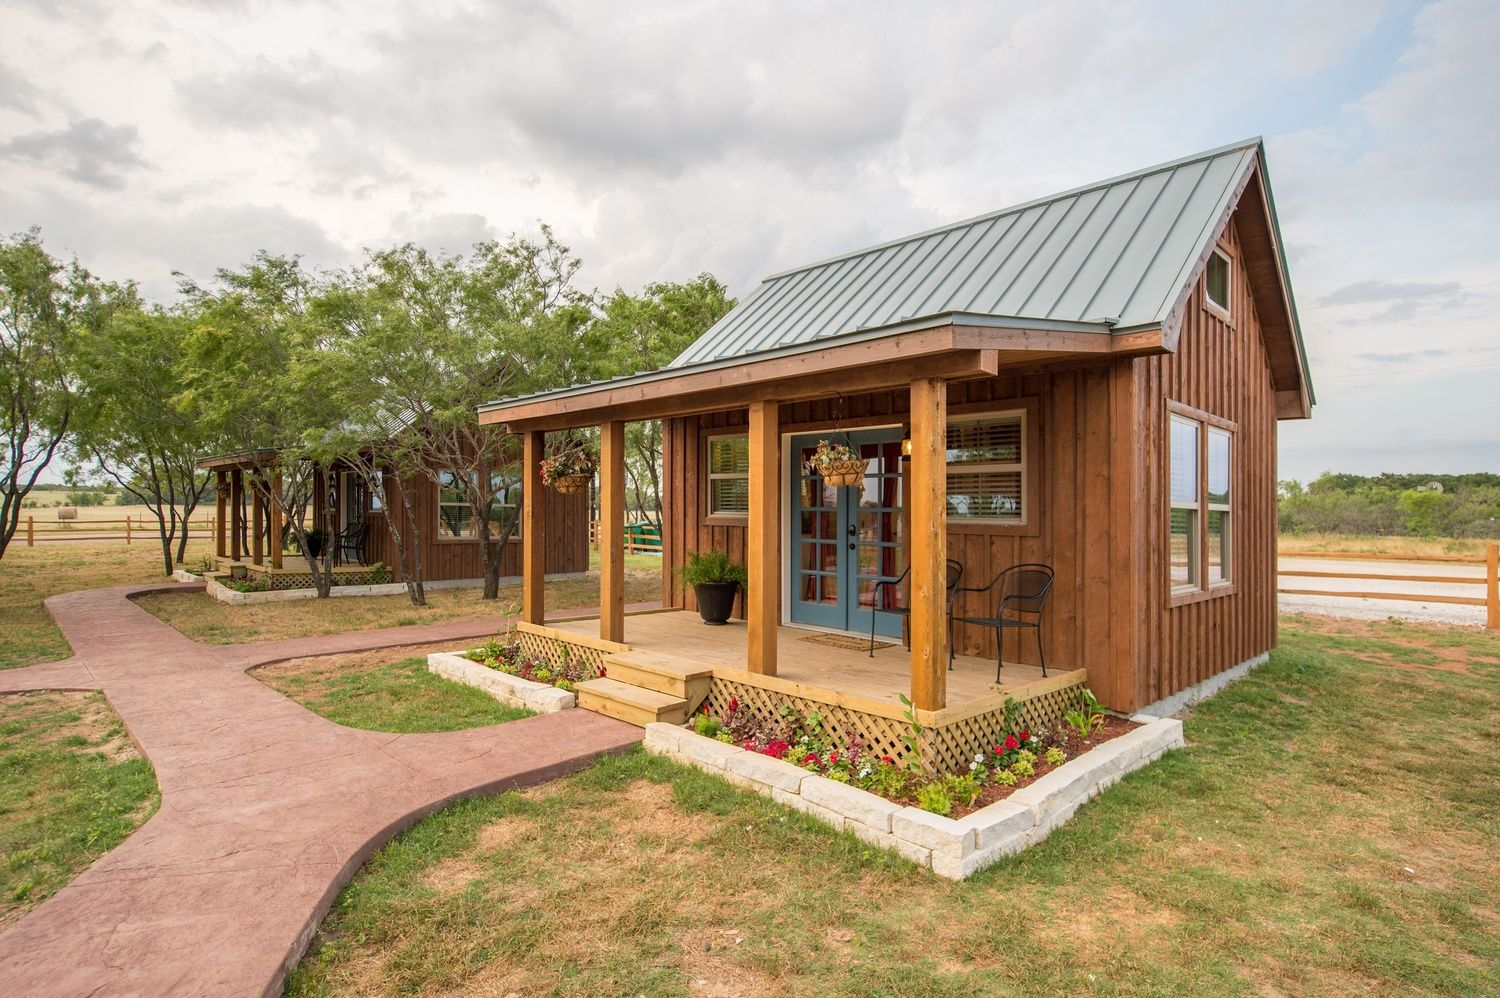 Tiny House Cabin Rental In A Peaceful Rural Setting In